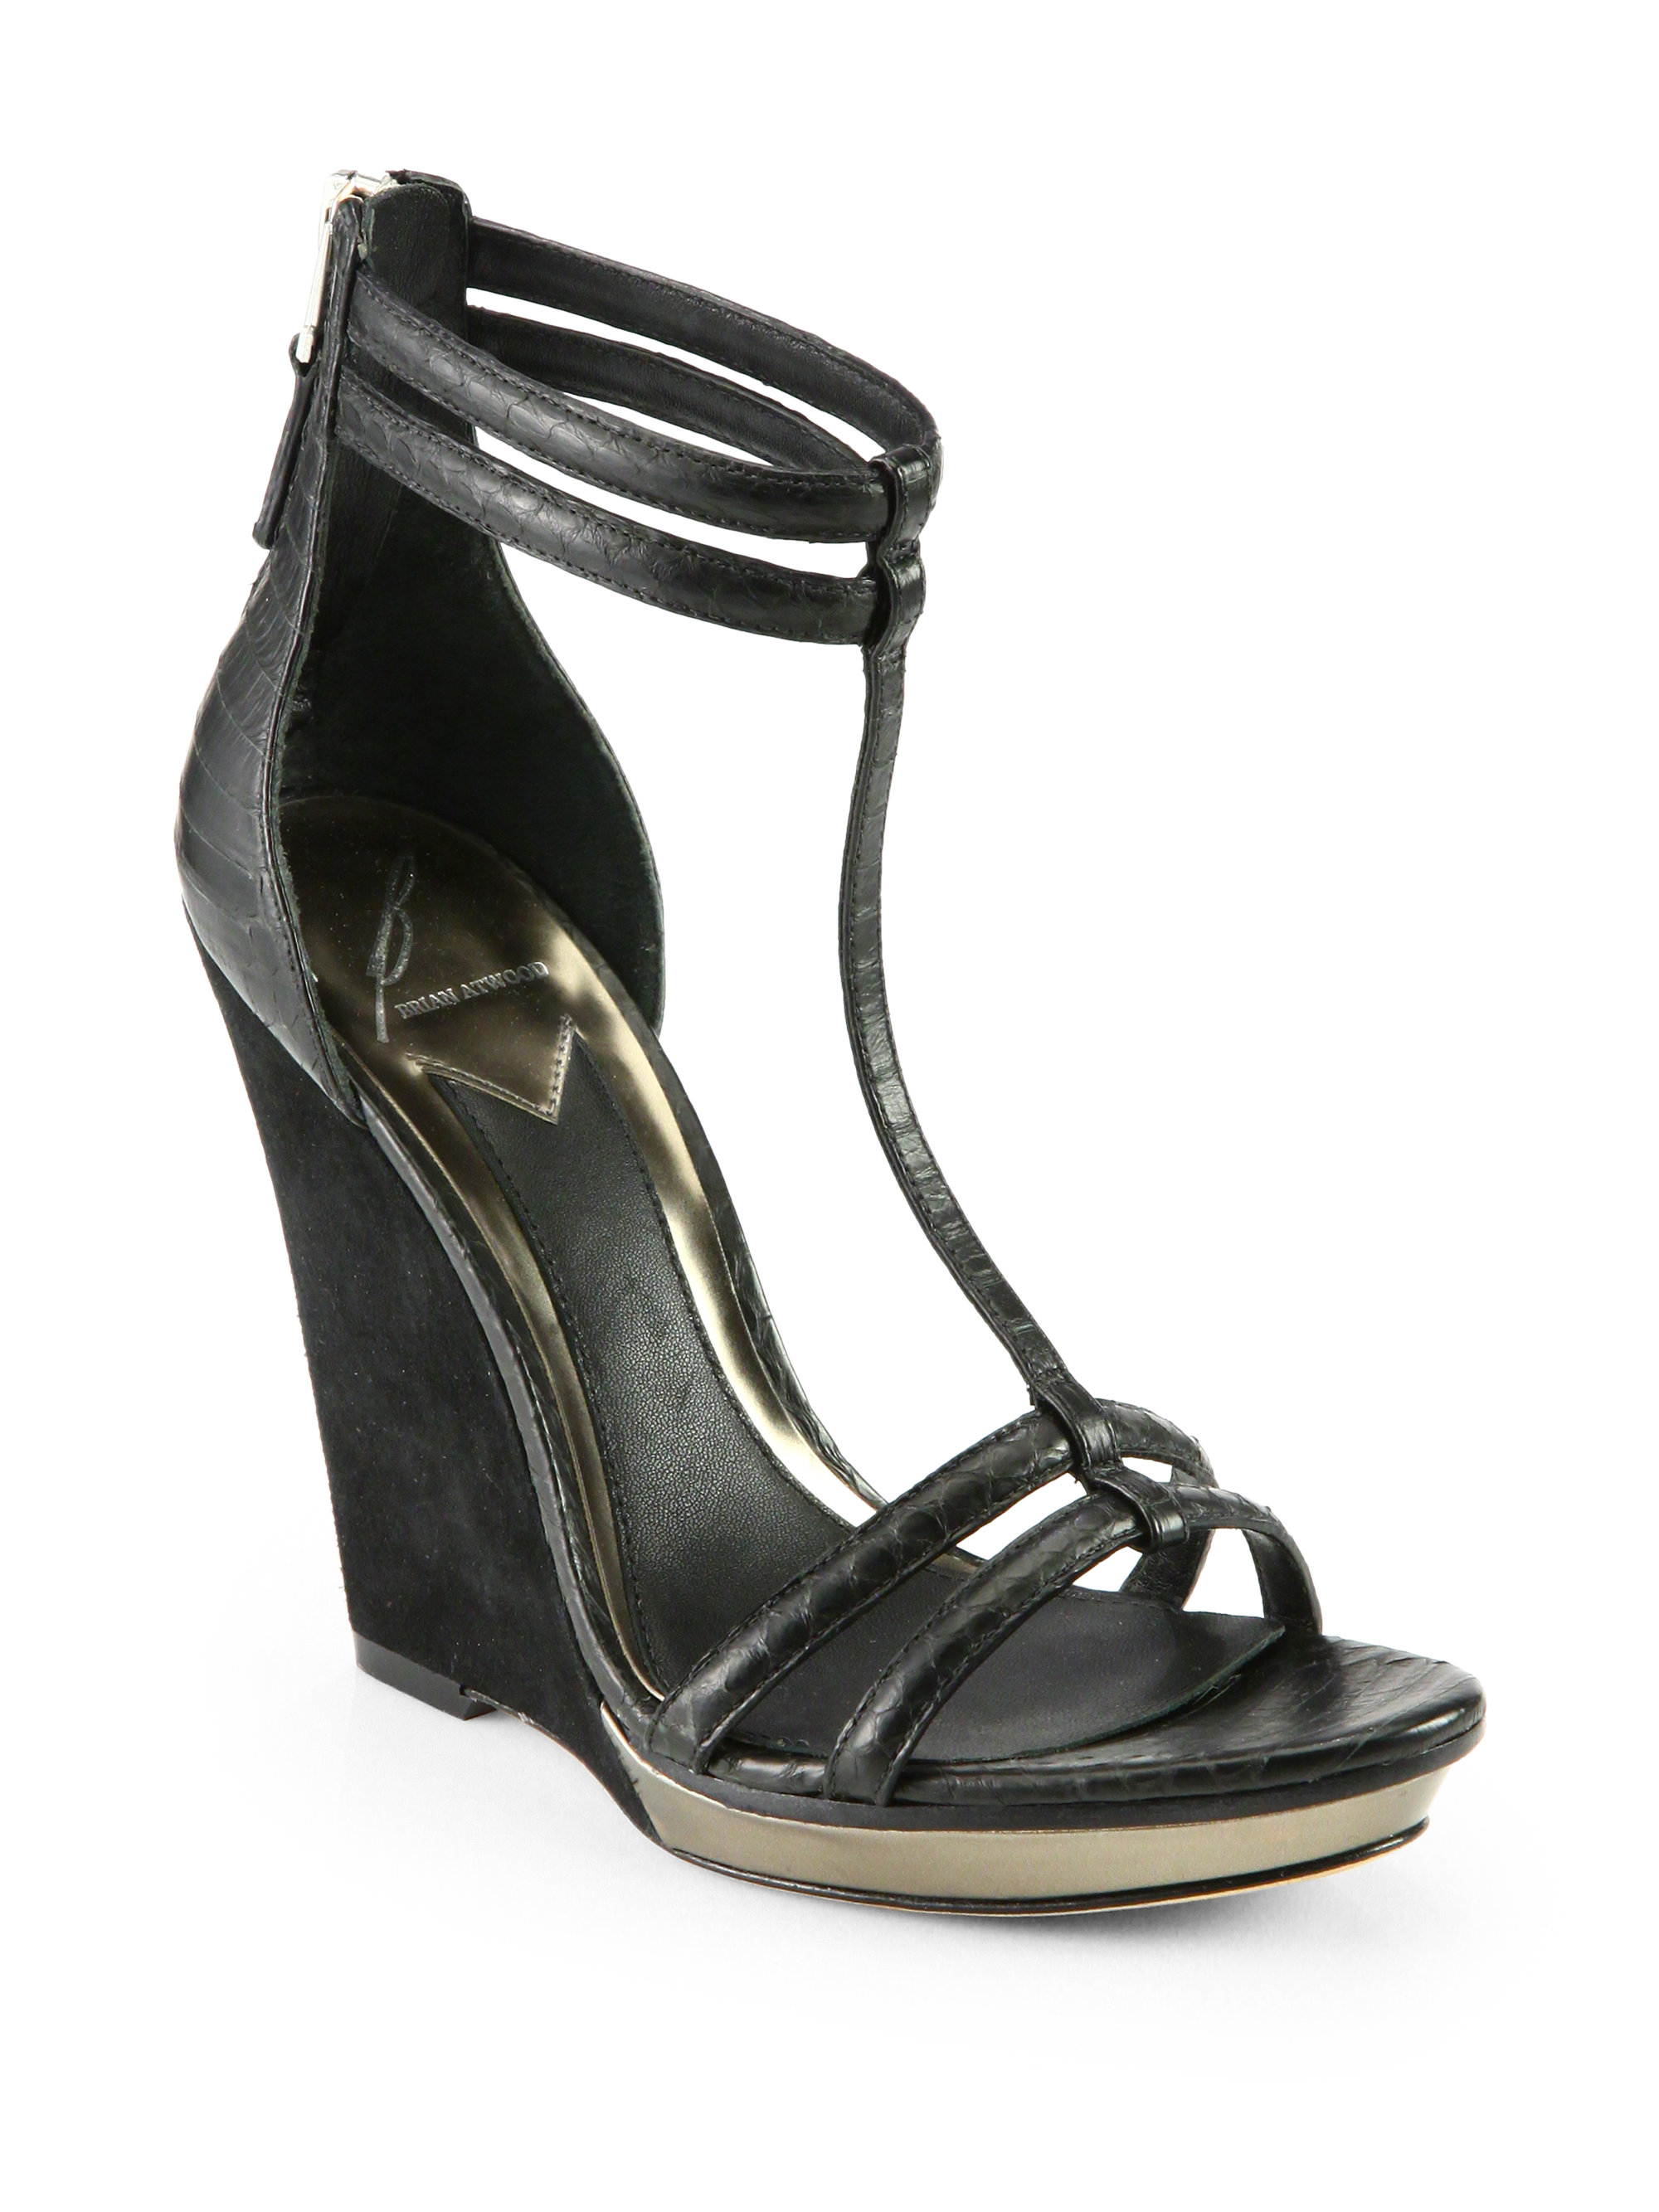 BRIAN ATWOOD Patent Leather Sandals